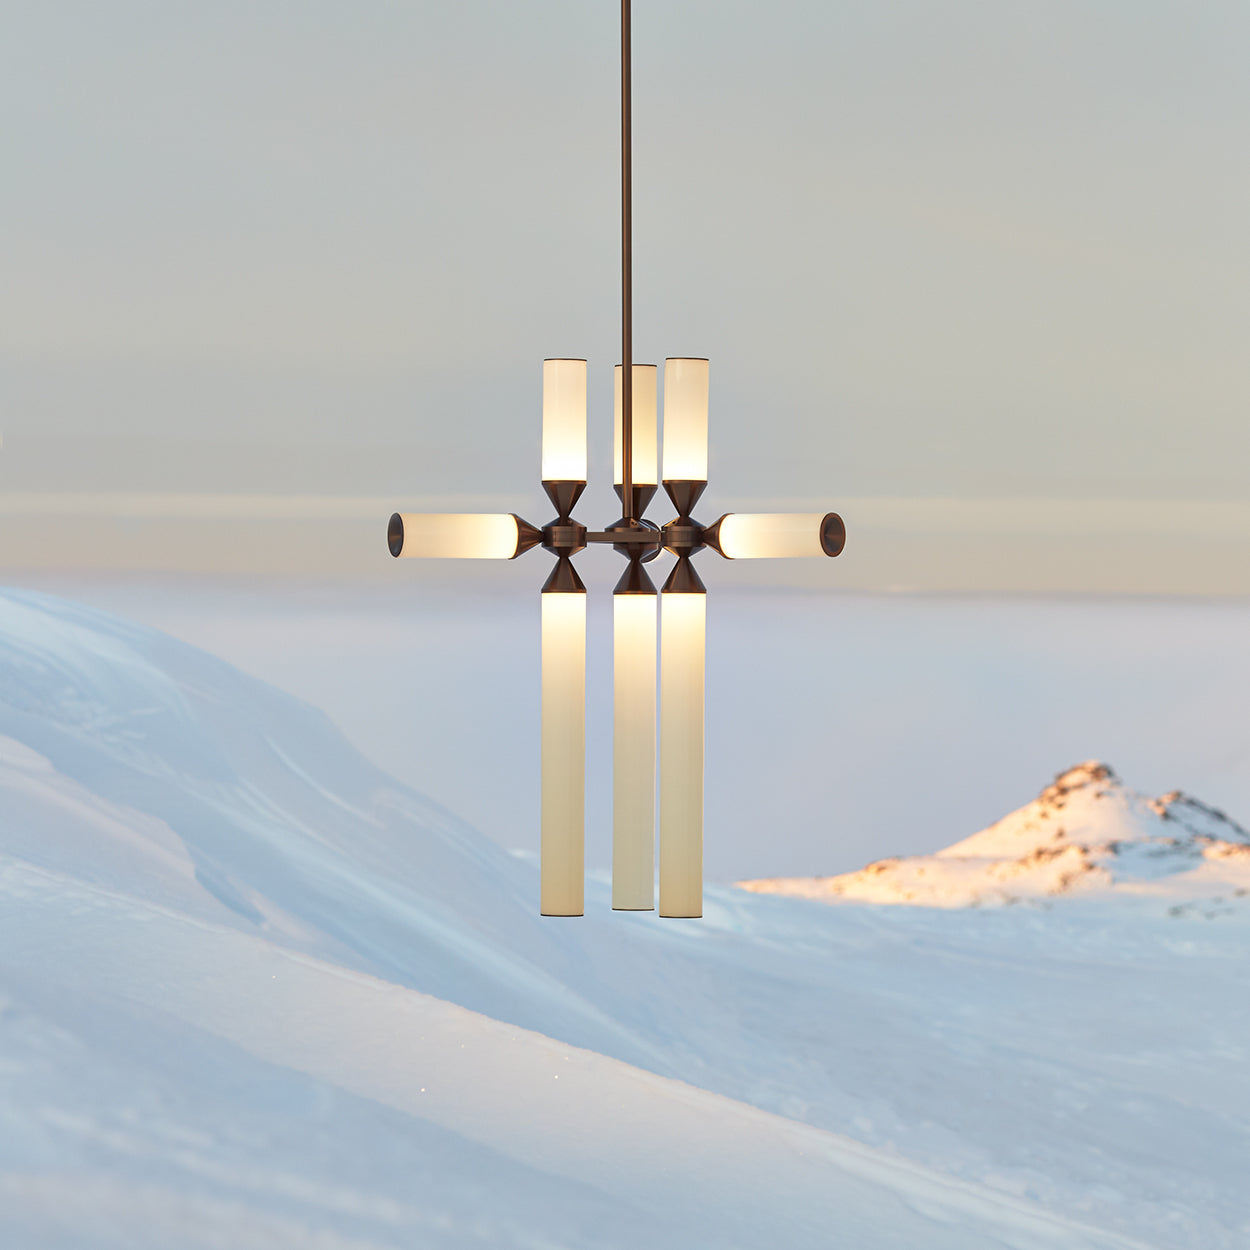 Roll Hill Wiring A New Light Fixture Uk Castle By Jason Miller For Shot On Location In Iceland